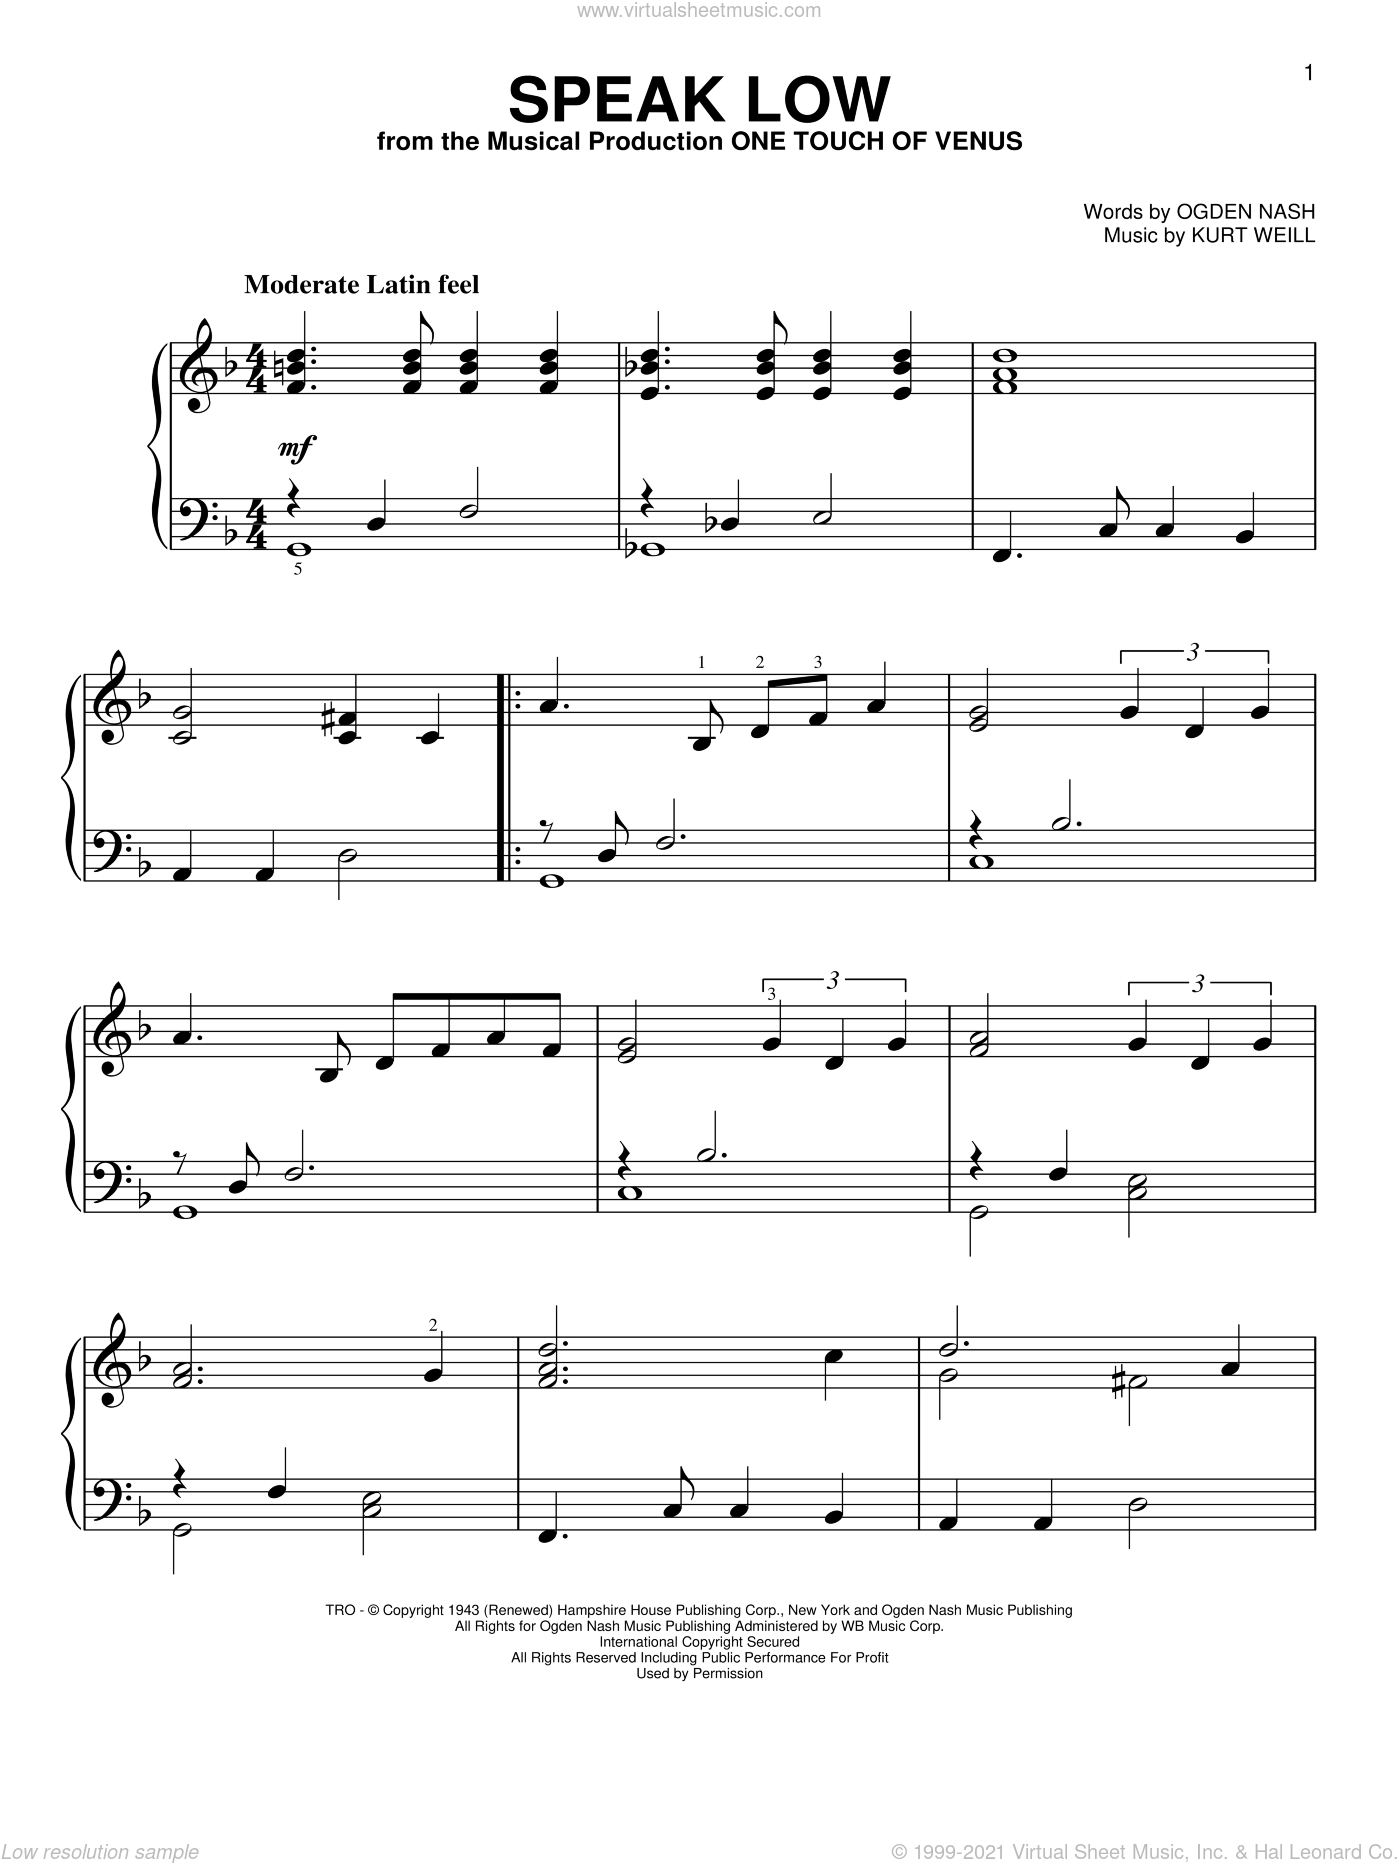 Speak Low sheet music for piano solo by Kurt Weill and Ogden Nash, easy skill level